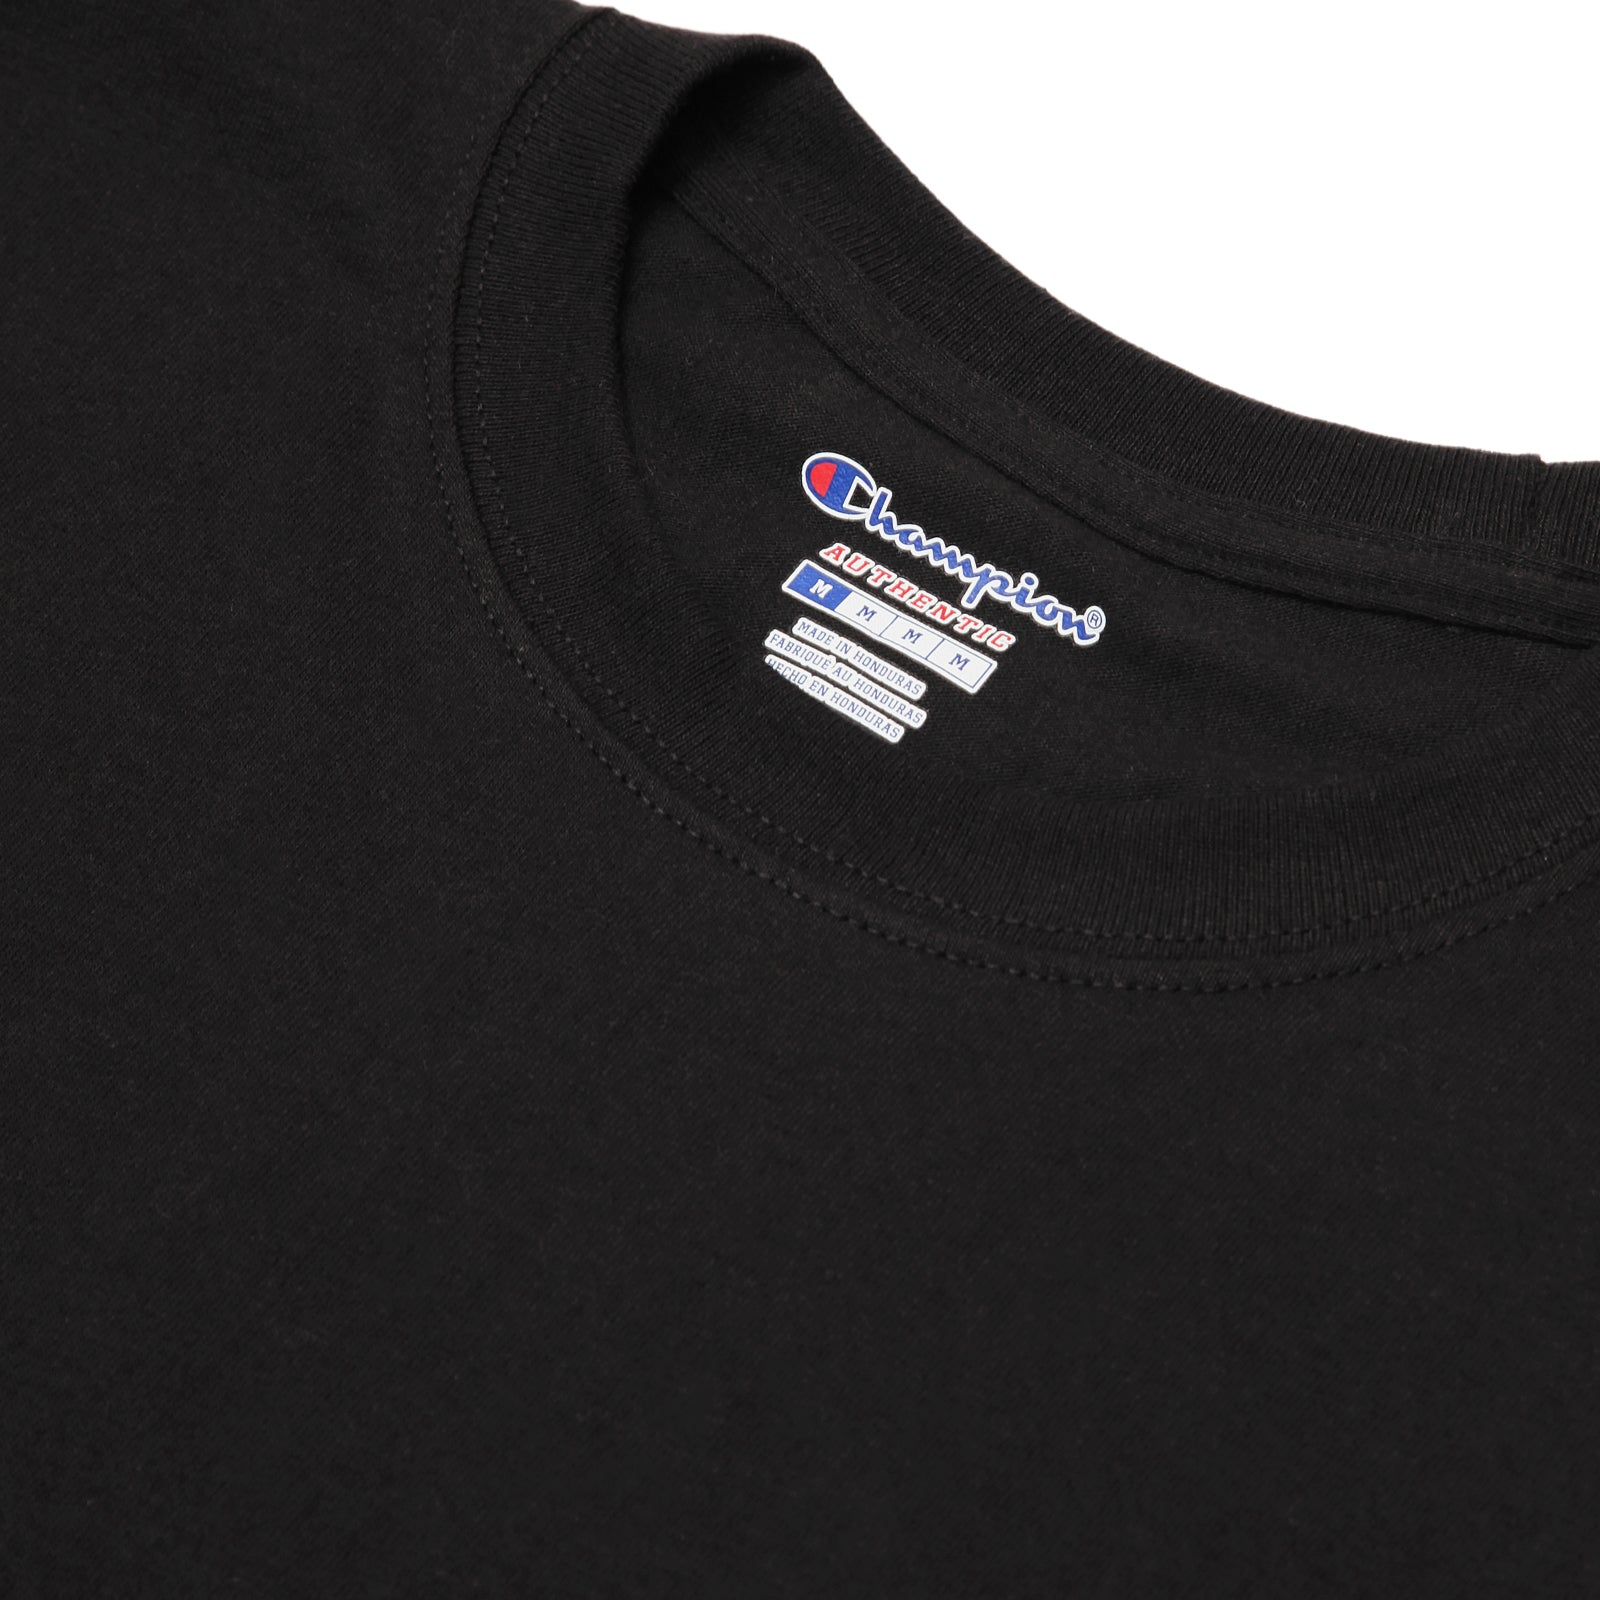 Champion - 6oz Classic T-Shirt - Black